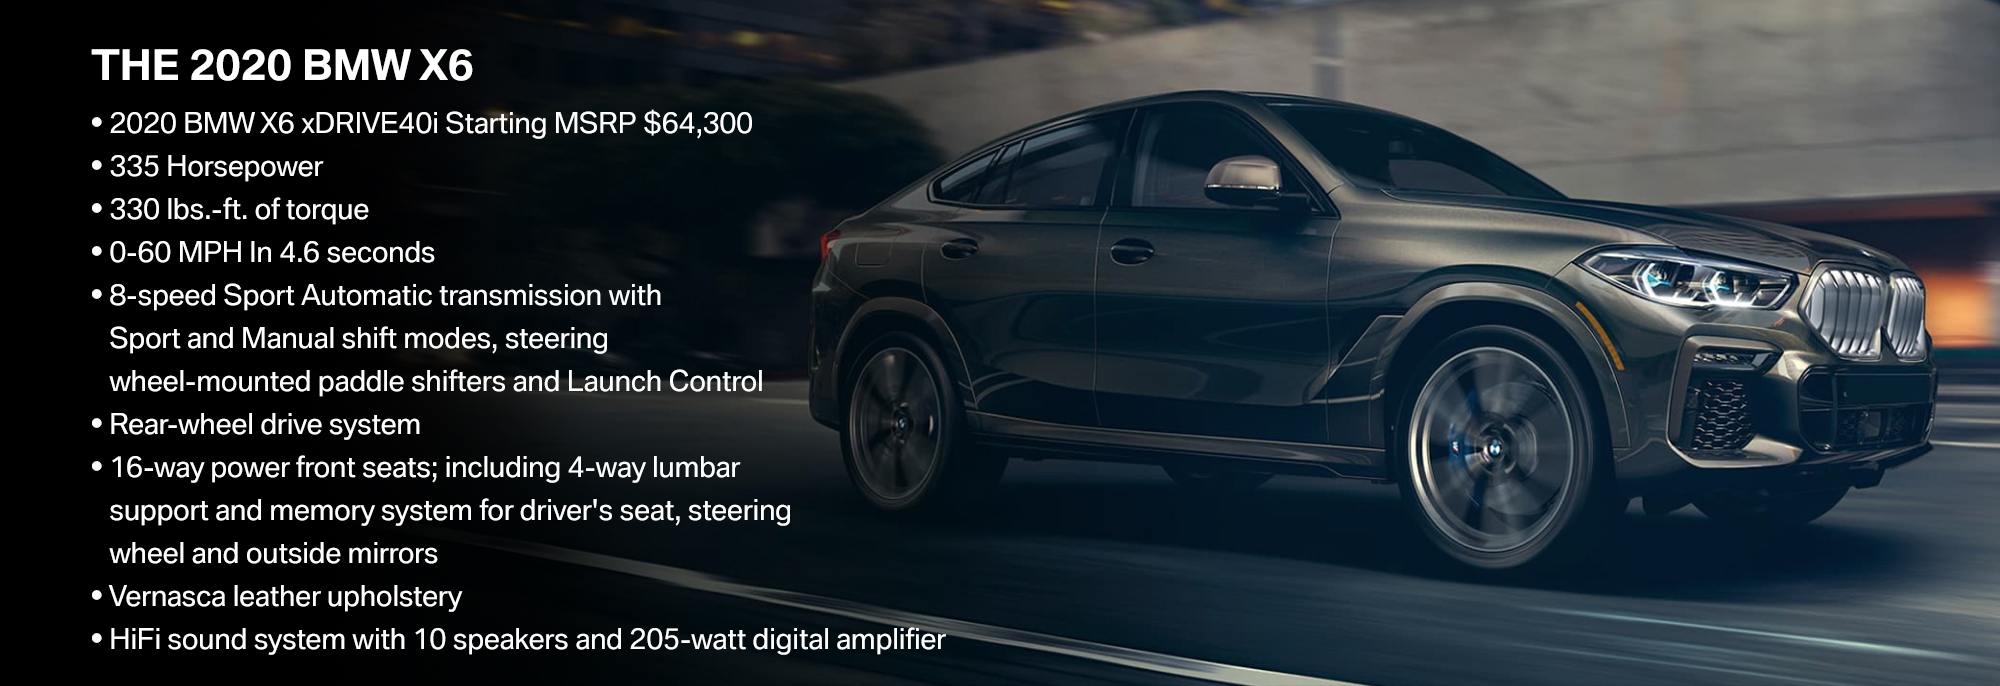 New 2020 BMW X6 Offer